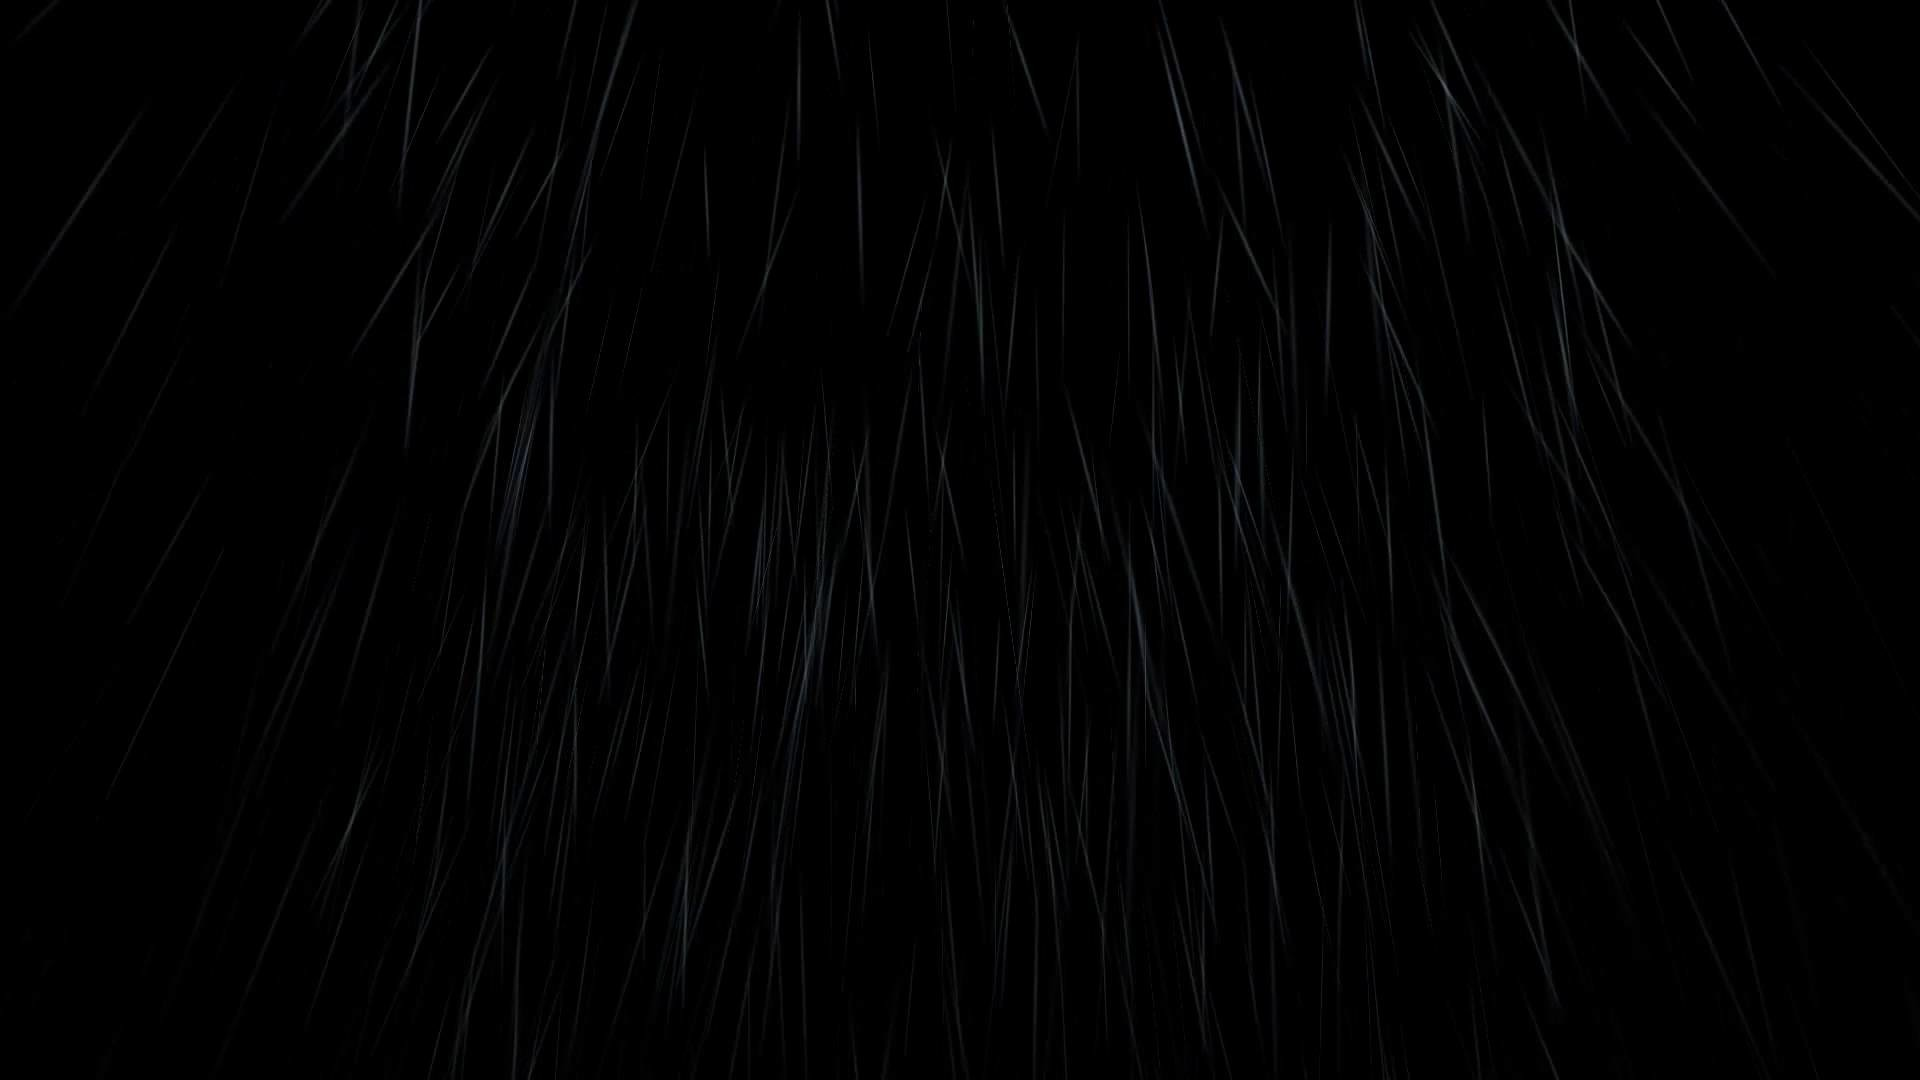 Black 1920x1080 Posted By Zoey Tremblay